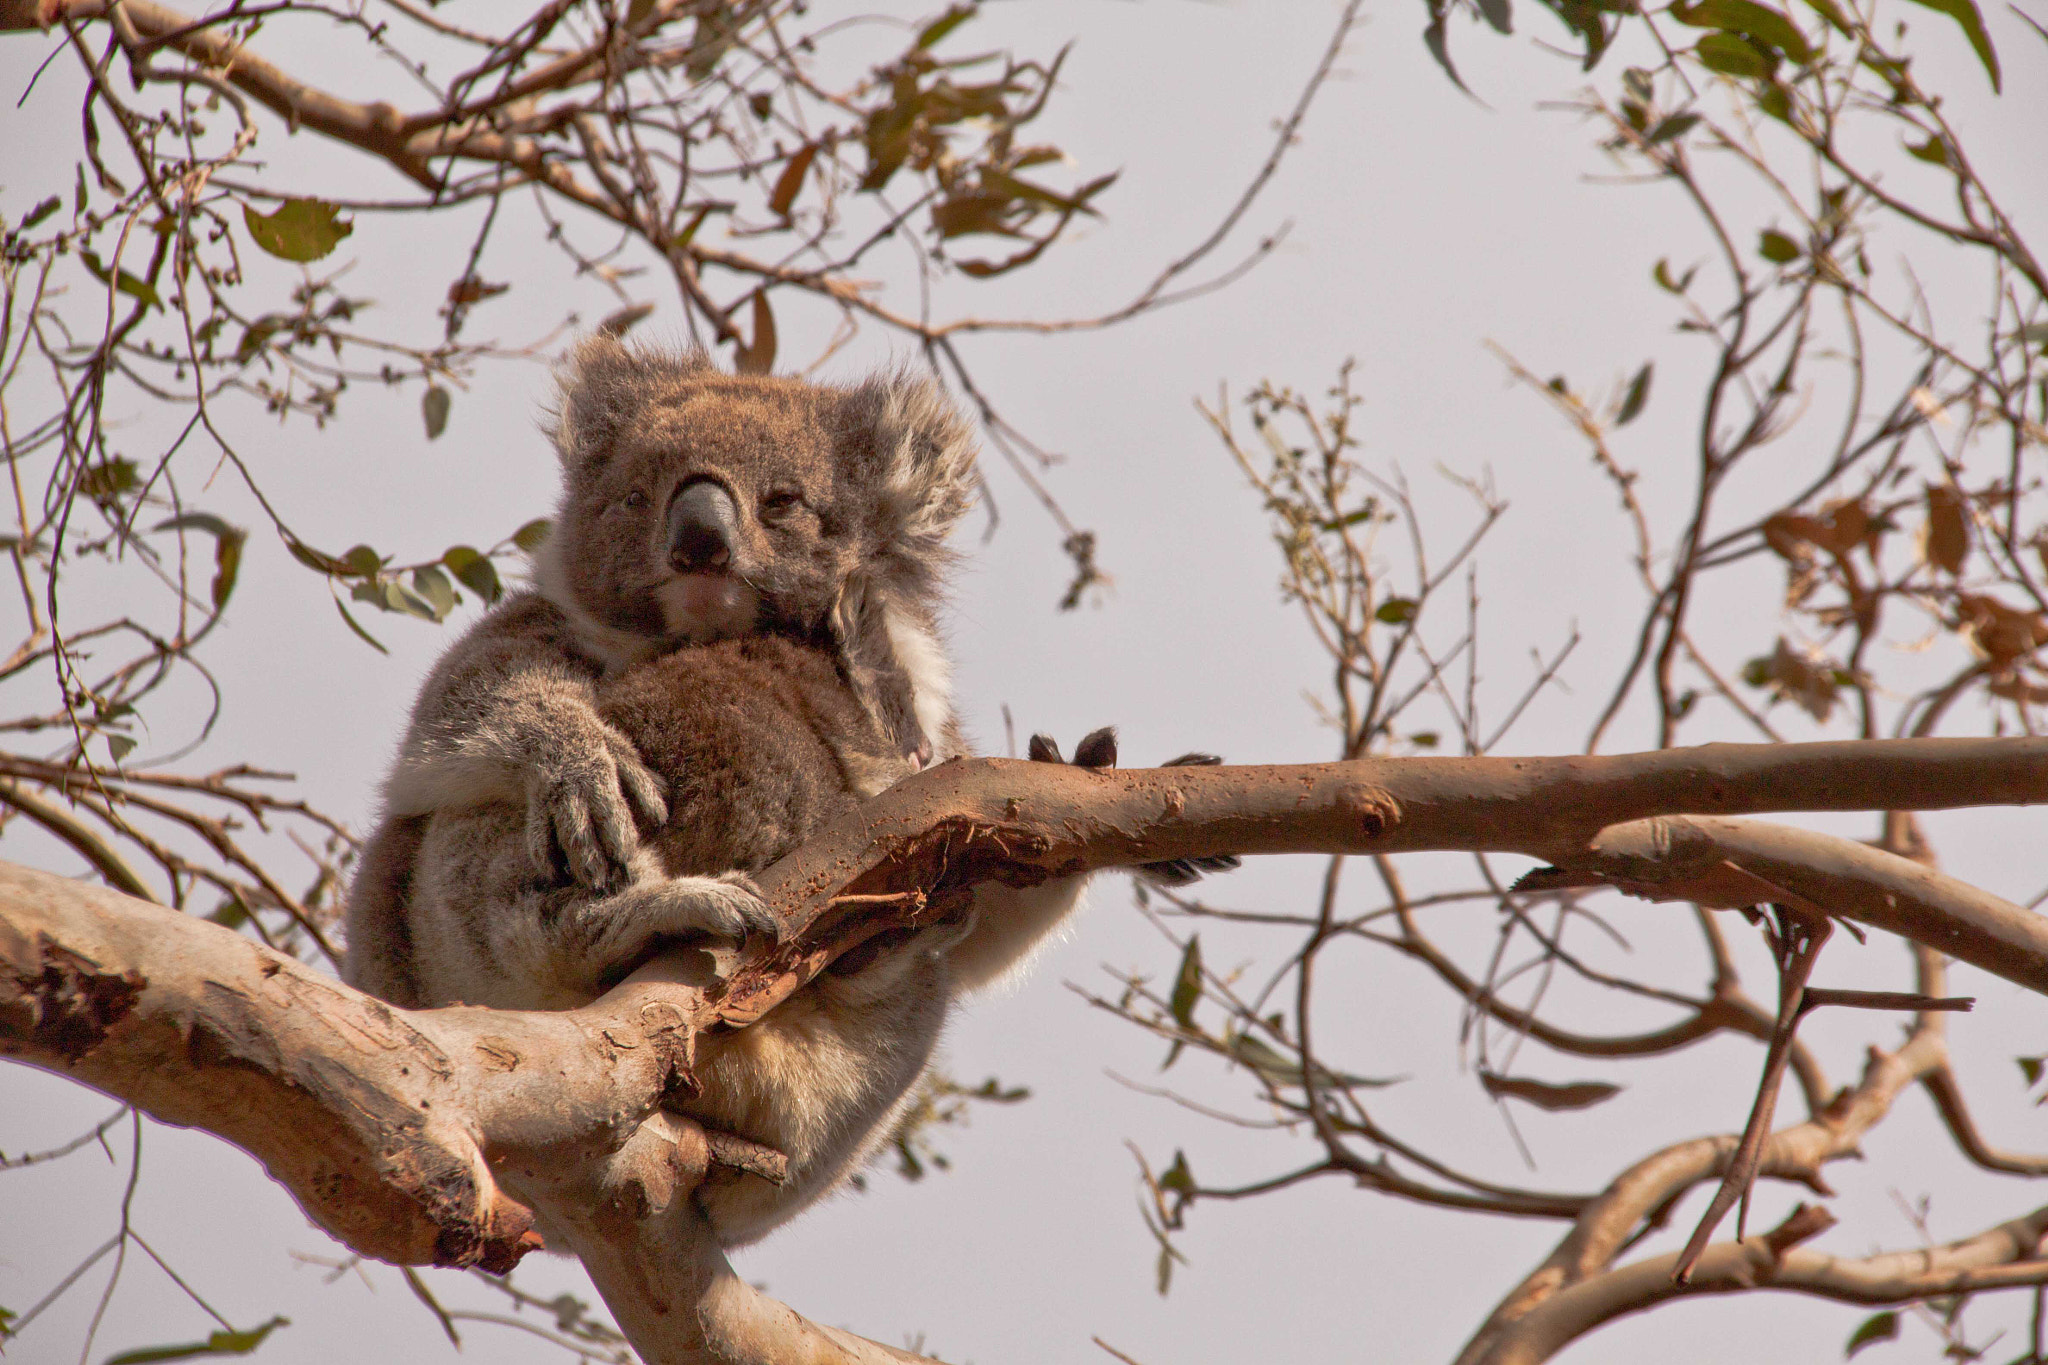 Photograph Koala by Bianca Anderson on 500px